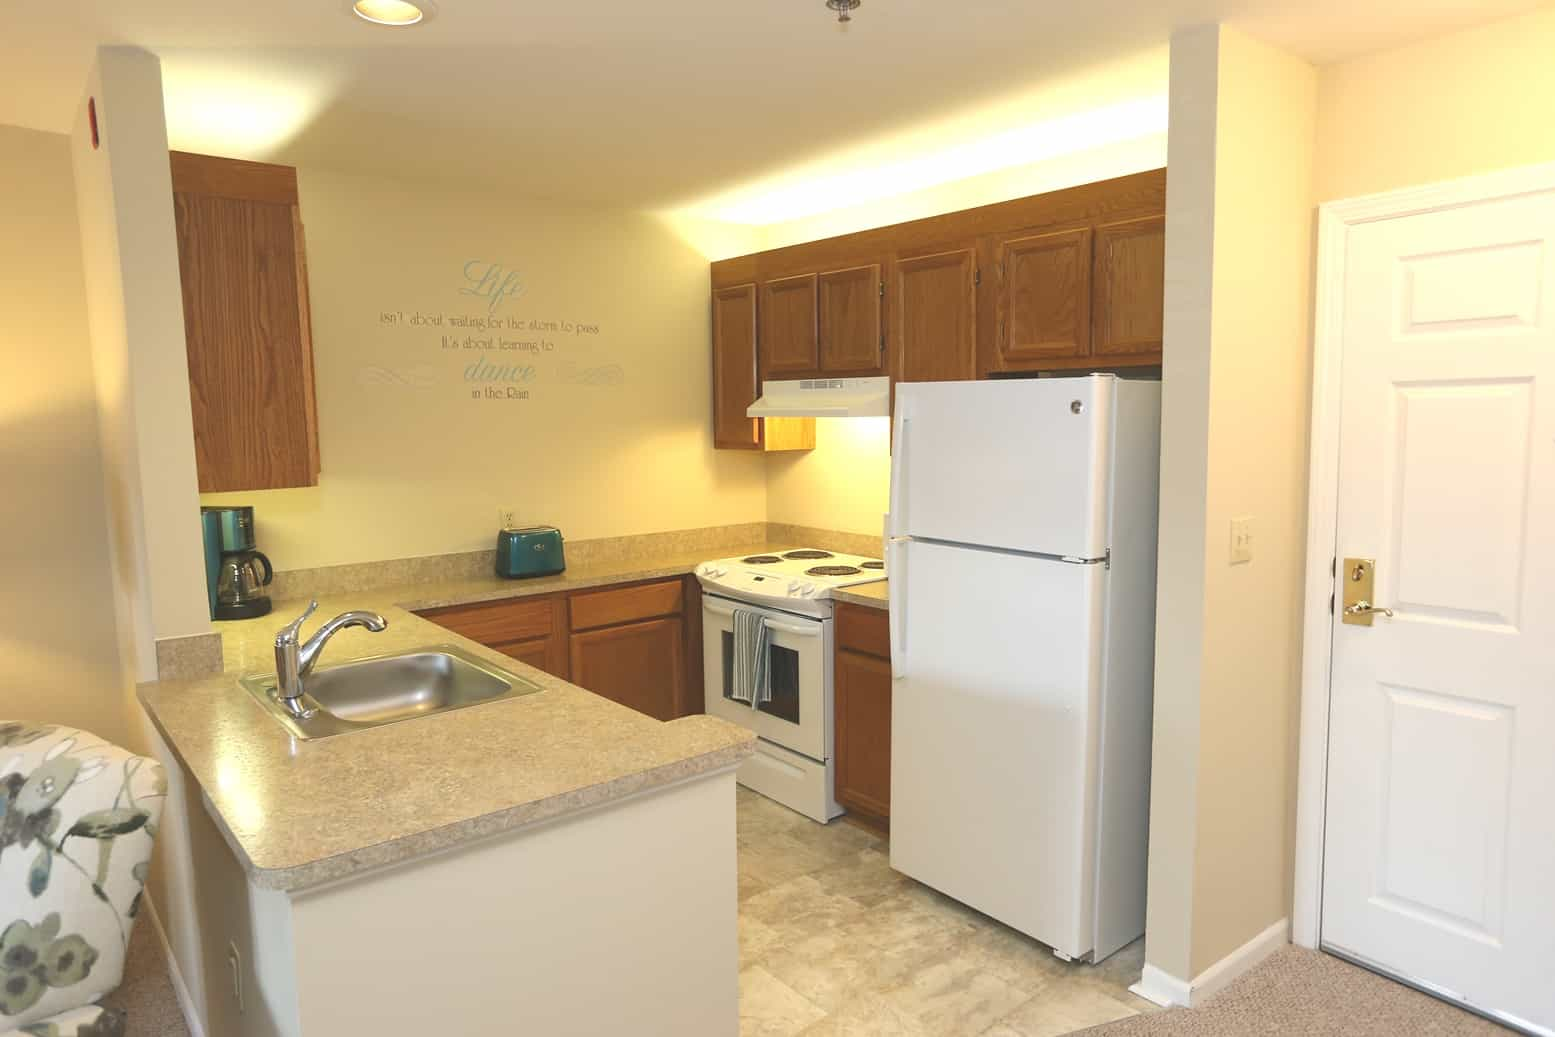 Senior apartments, independent living floor plans and costs